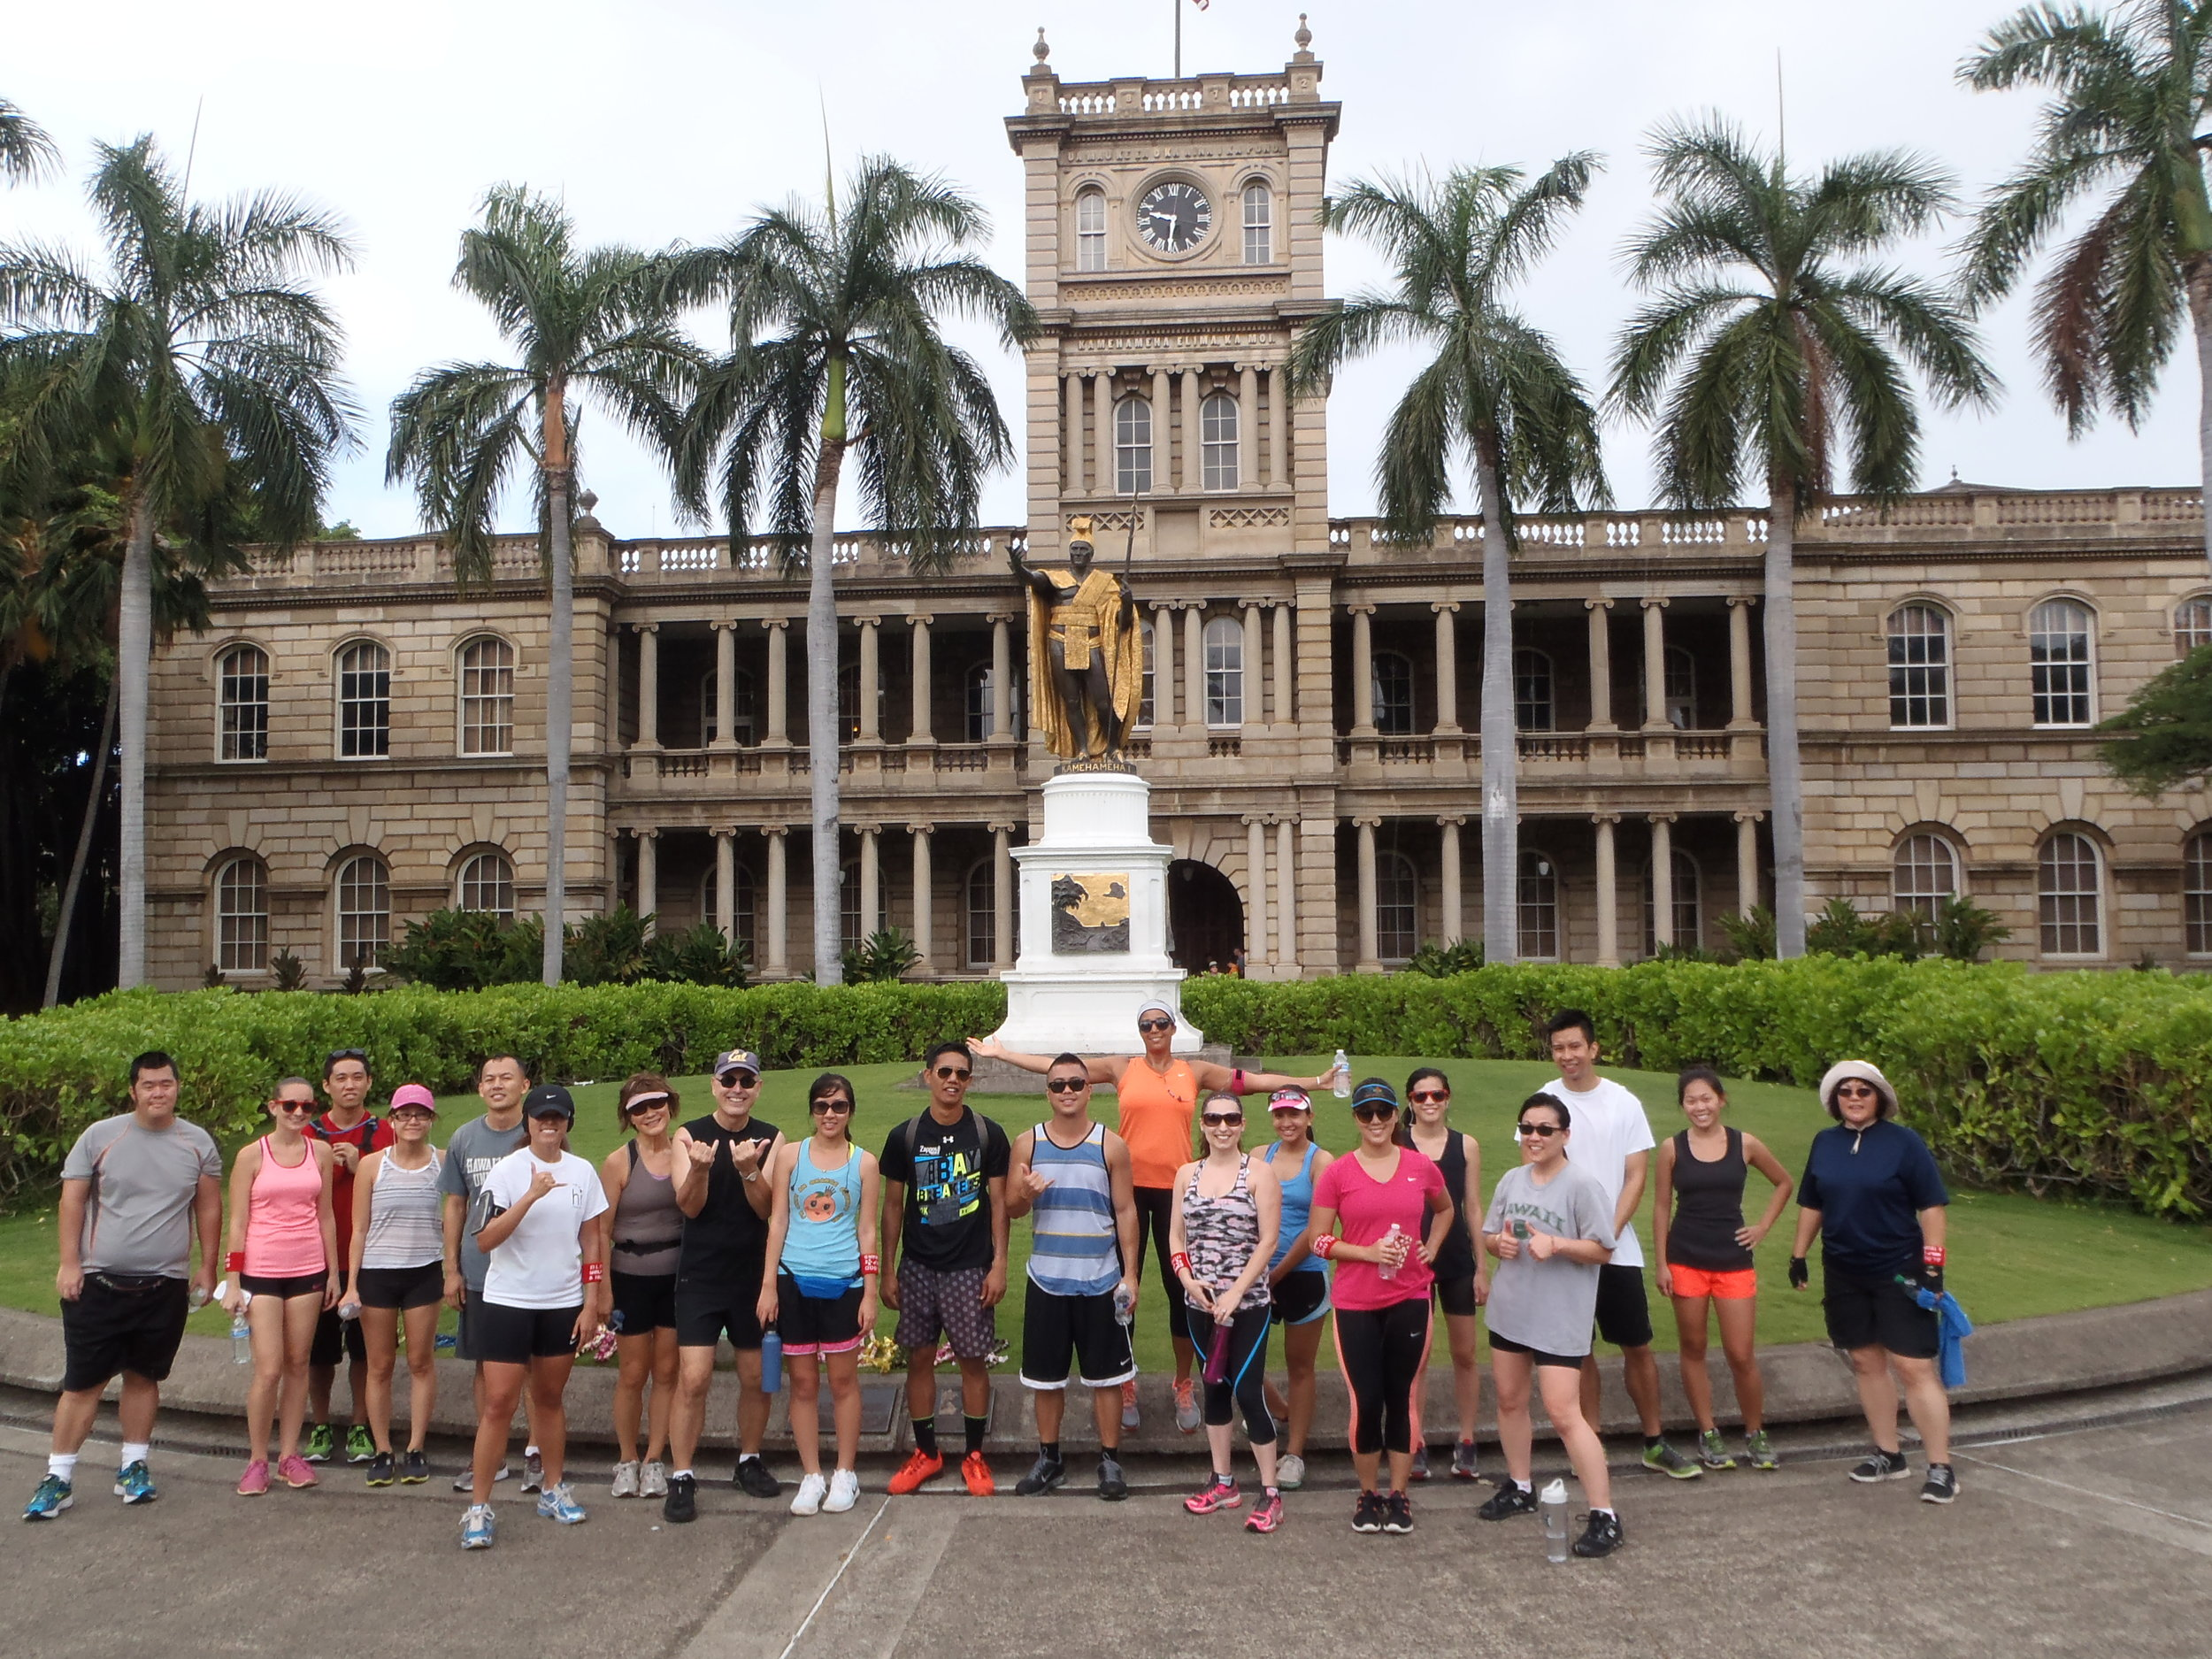 ORGANIZE YOUR NEXT CORPORATE OR SOCIAL GROUP RUNNING TOUR IN HONOLULU